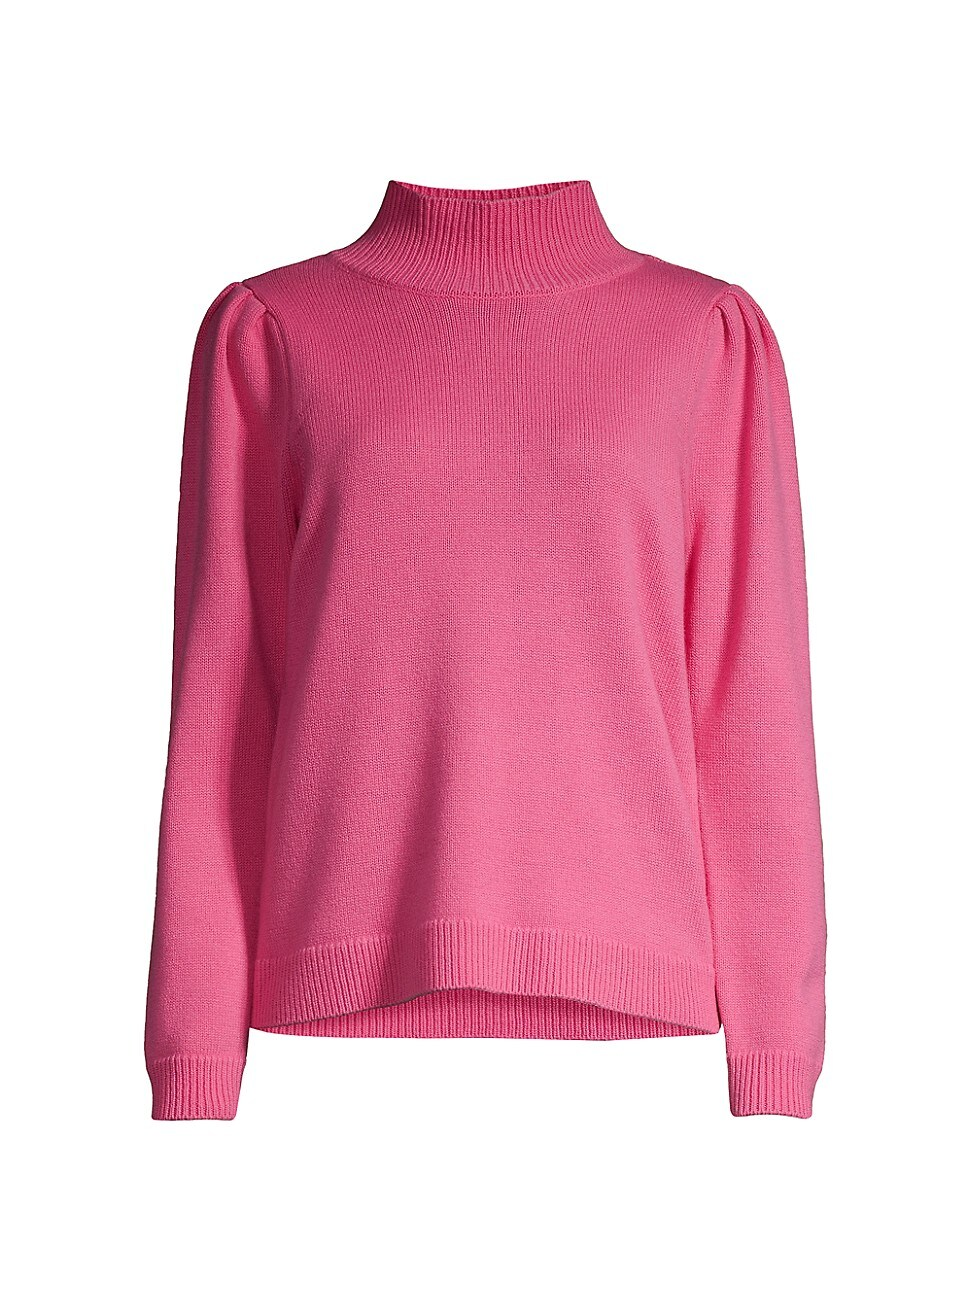 Milly Wools WOMEN'S RELAXED TURTLENECK SWEATER